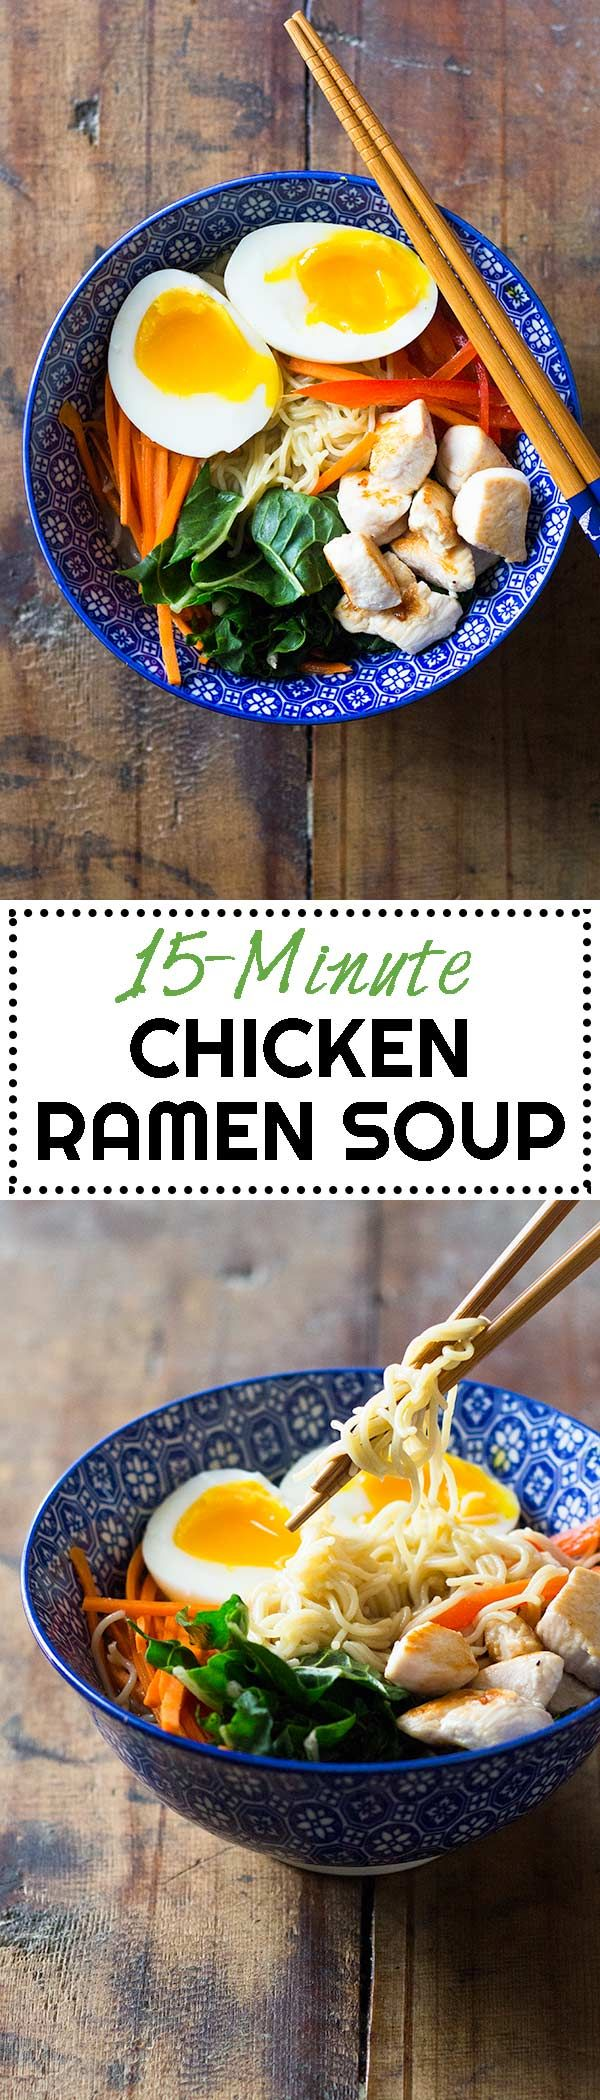 You're *this* close to ordering unhealthy take-out? STOP! I have a healthy alternative for you: 15-Minute Chicken Ramen Soup. via @greenhealthycoo